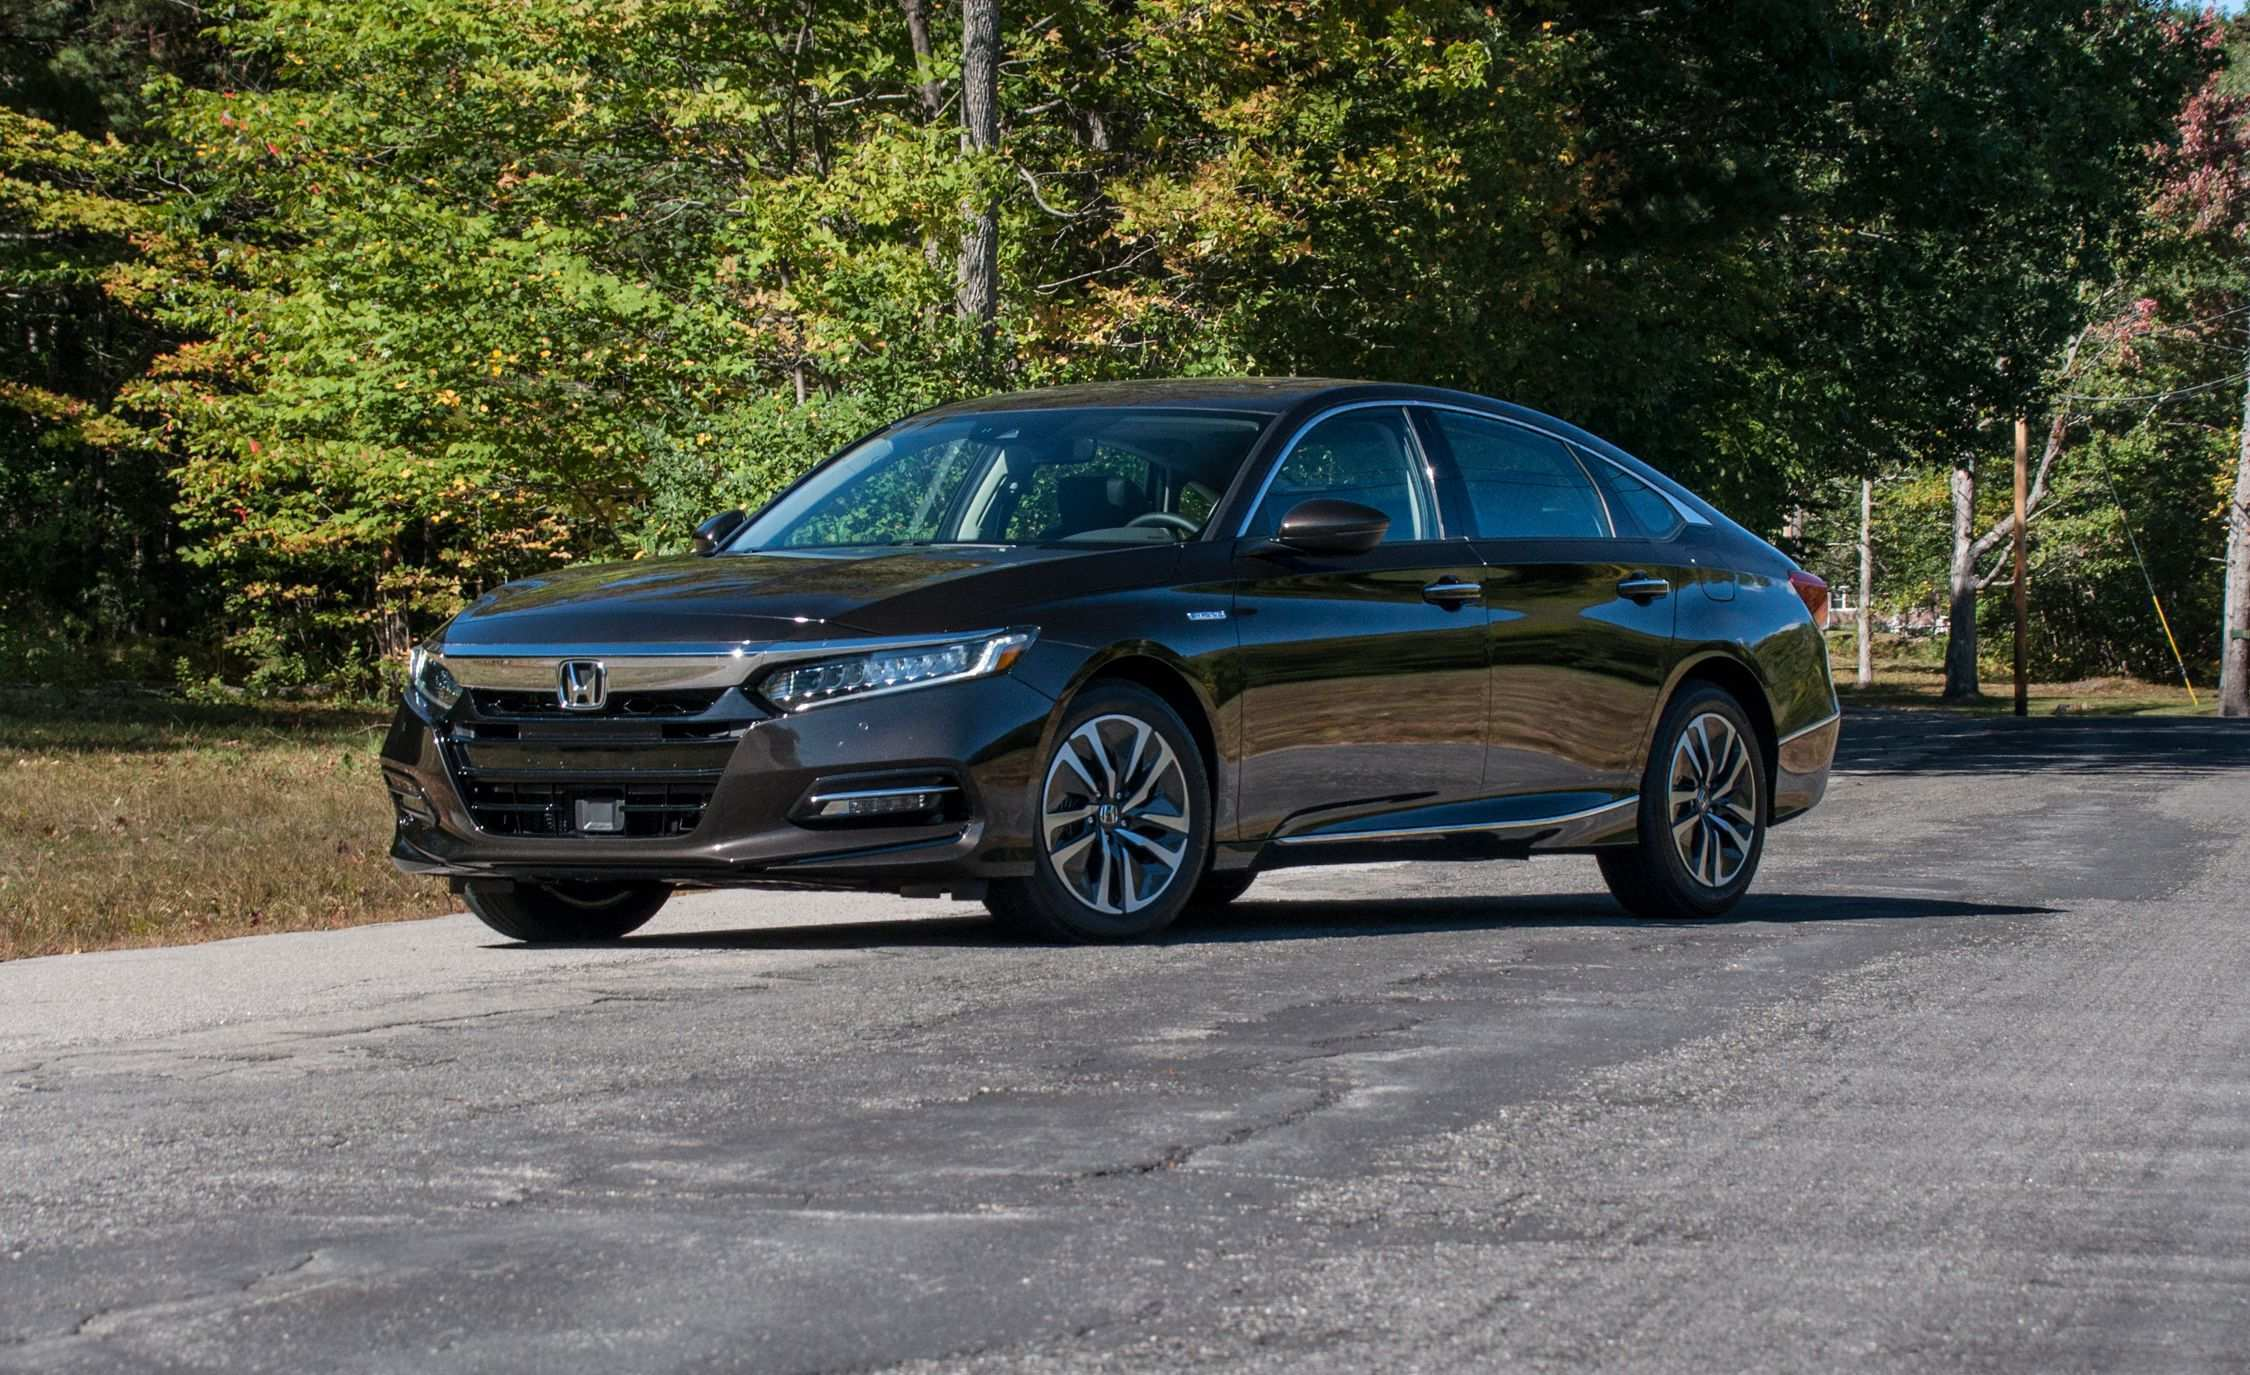 17 Gallery of New Honda Accord Hybrid 2019 Price And Release Date Specs and Review with New Honda Accord Hybrid 2019 Price And Release Date